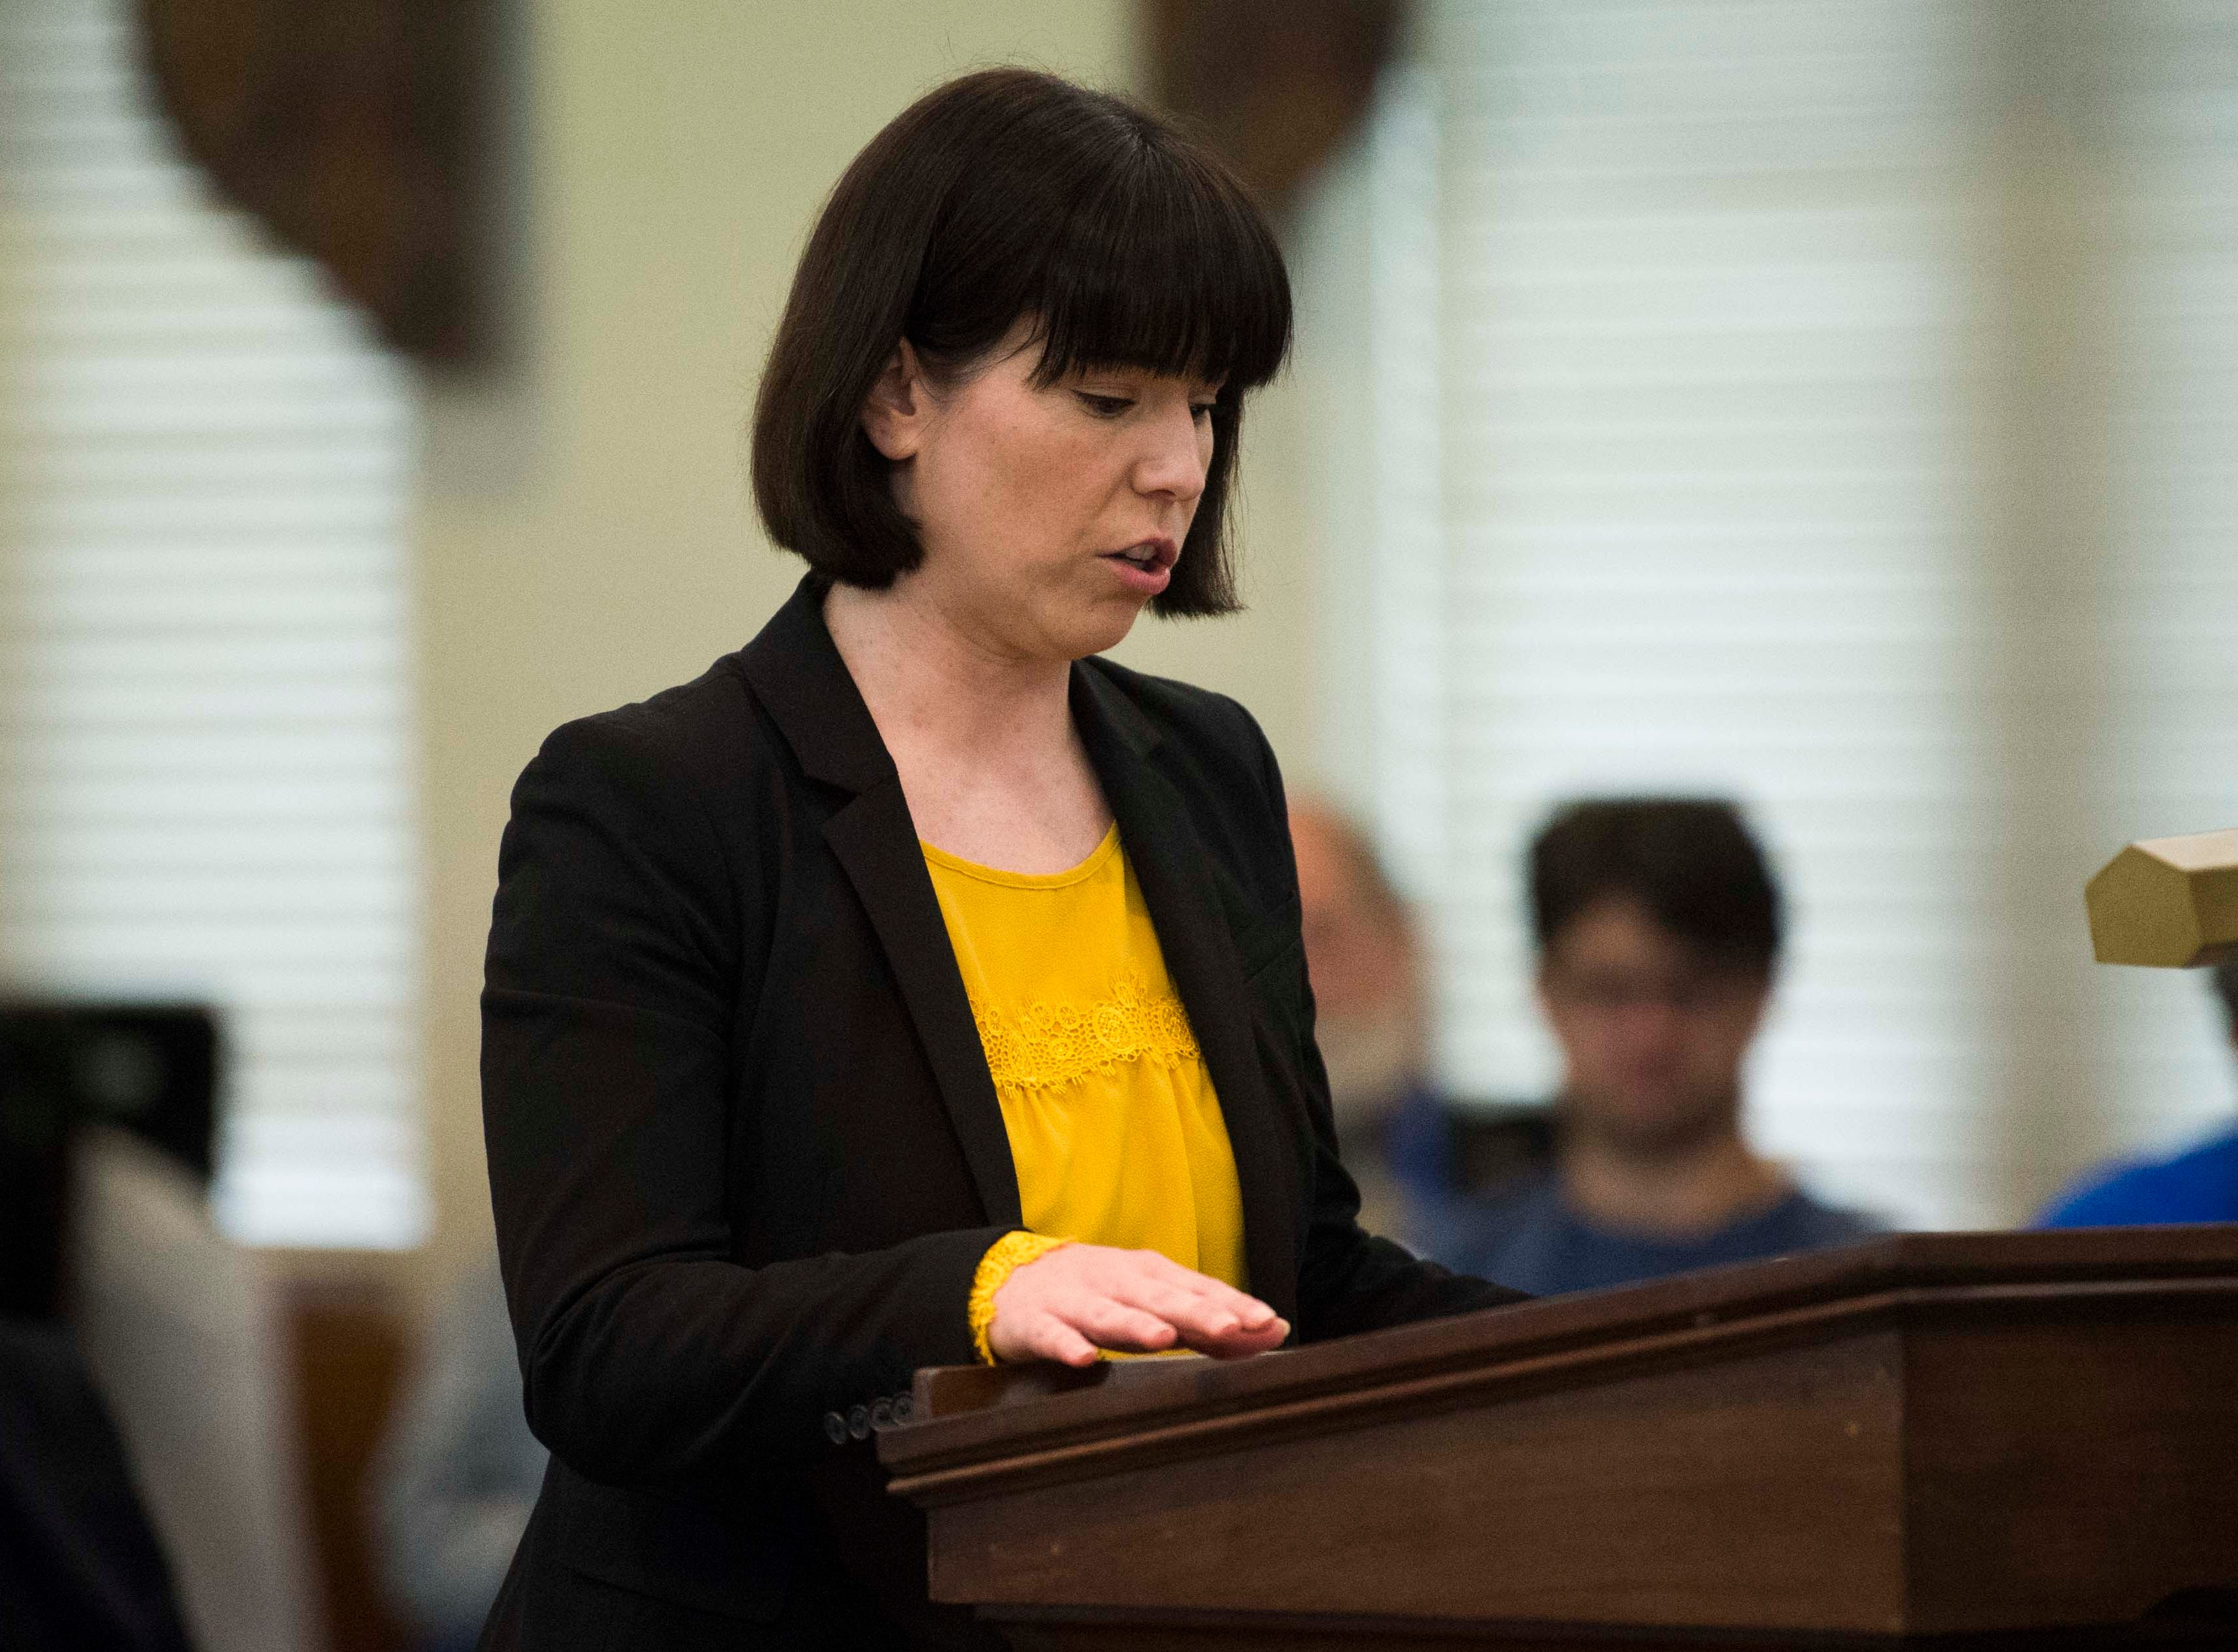 Christine Ball-Blakely  speaks during a mock trial put on by Allies of Knoxville's Immigrant Neighbors, AKIN, at St. James Episcopal Church of Knoxville in Knoxville, Saturday, May 11, 2019. The court was part of the group's efforts to raise awareness about the negative effects of Knox County's 287(g) program, the only program of its kind in the state, which trains local officers to enforce federal immigration laws.